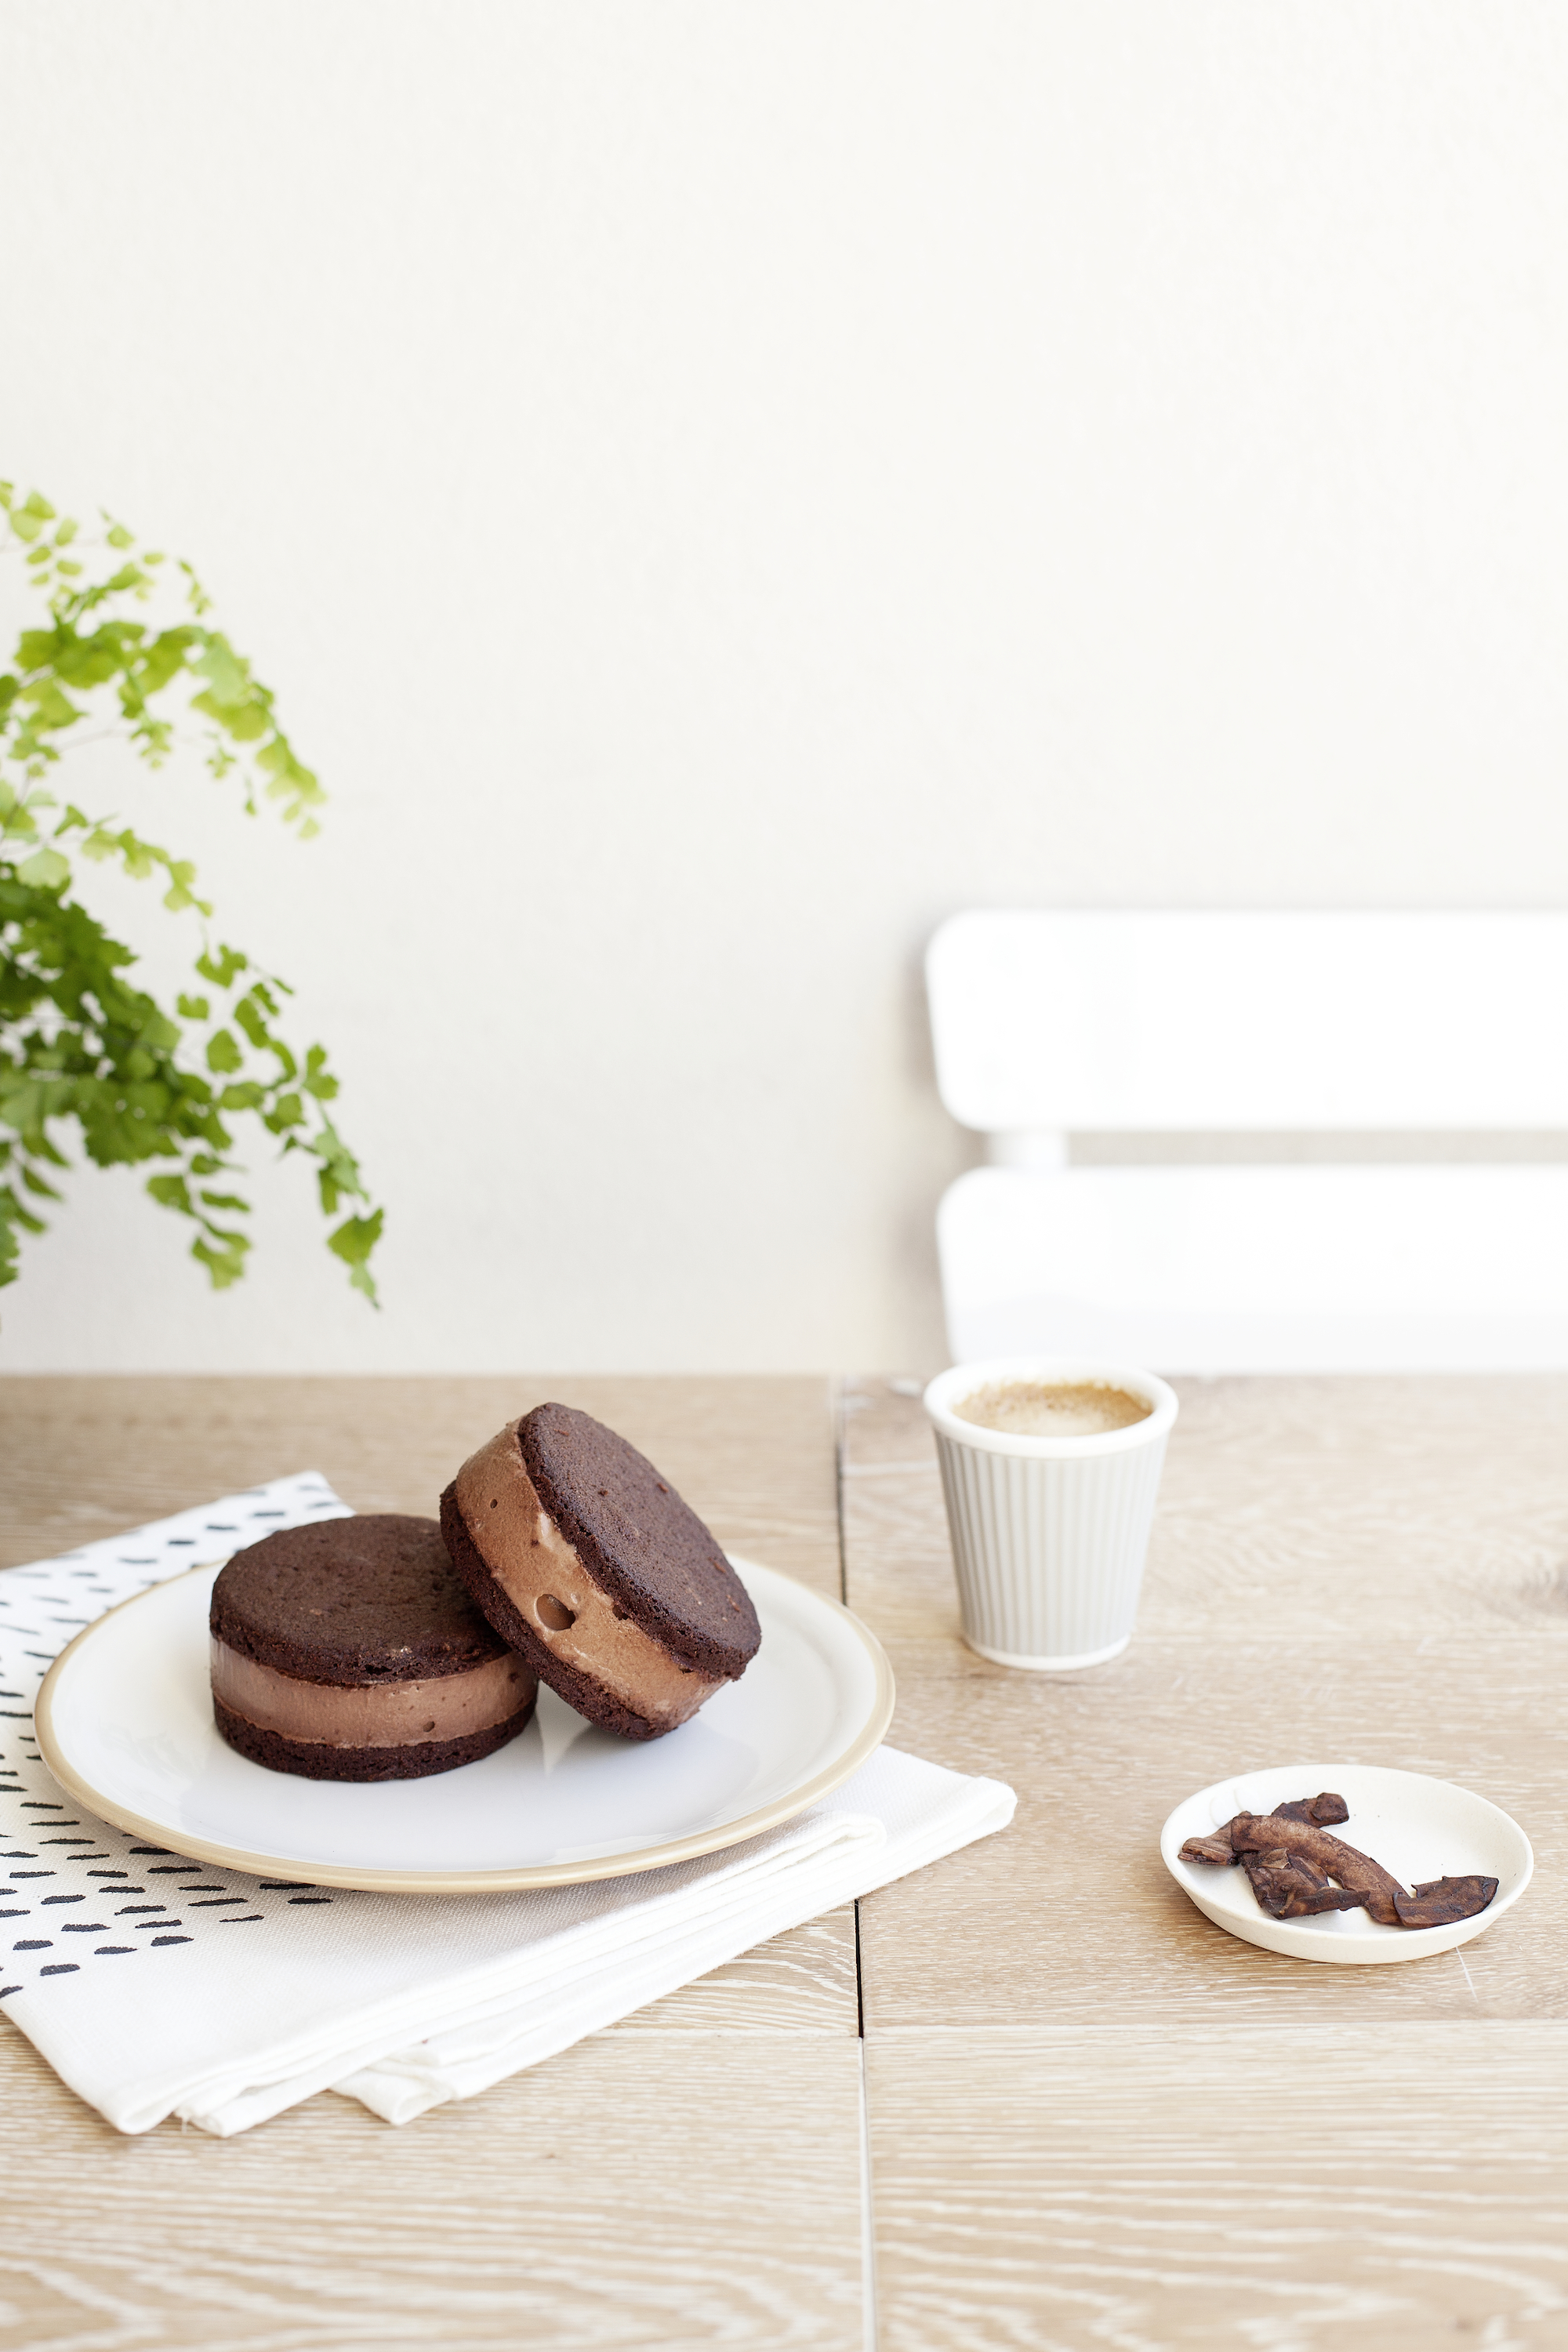 Kenkō Kitchen Ice Cream Sandwiches.Tea towel by  Spin Spin . Small cup and plate from Merci Paris. Large plate from Op Shop. Styling by  Kate Bradley , Photography by  Elisa Watson .